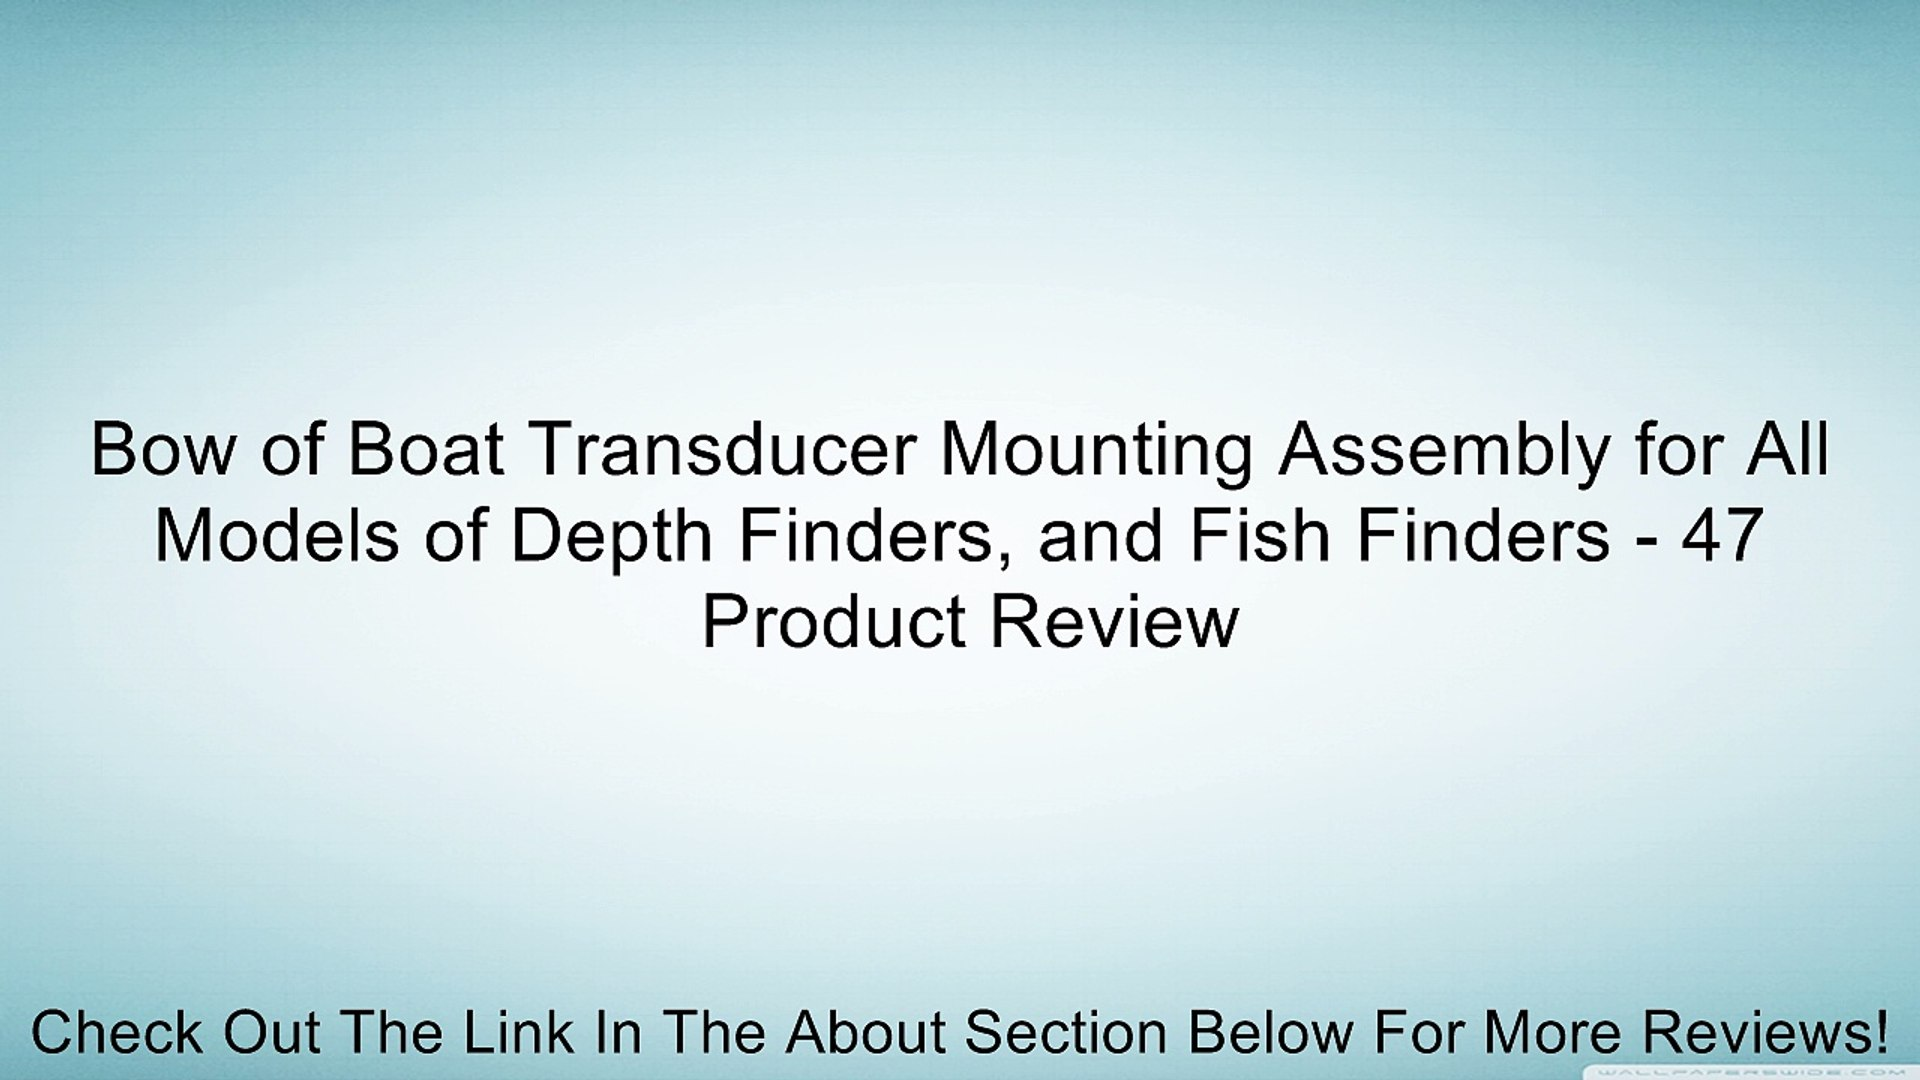 Bow of Boat Transducer Mounting Assembly for All Models of Depth Finders,  and Fish Finders - 47 Review